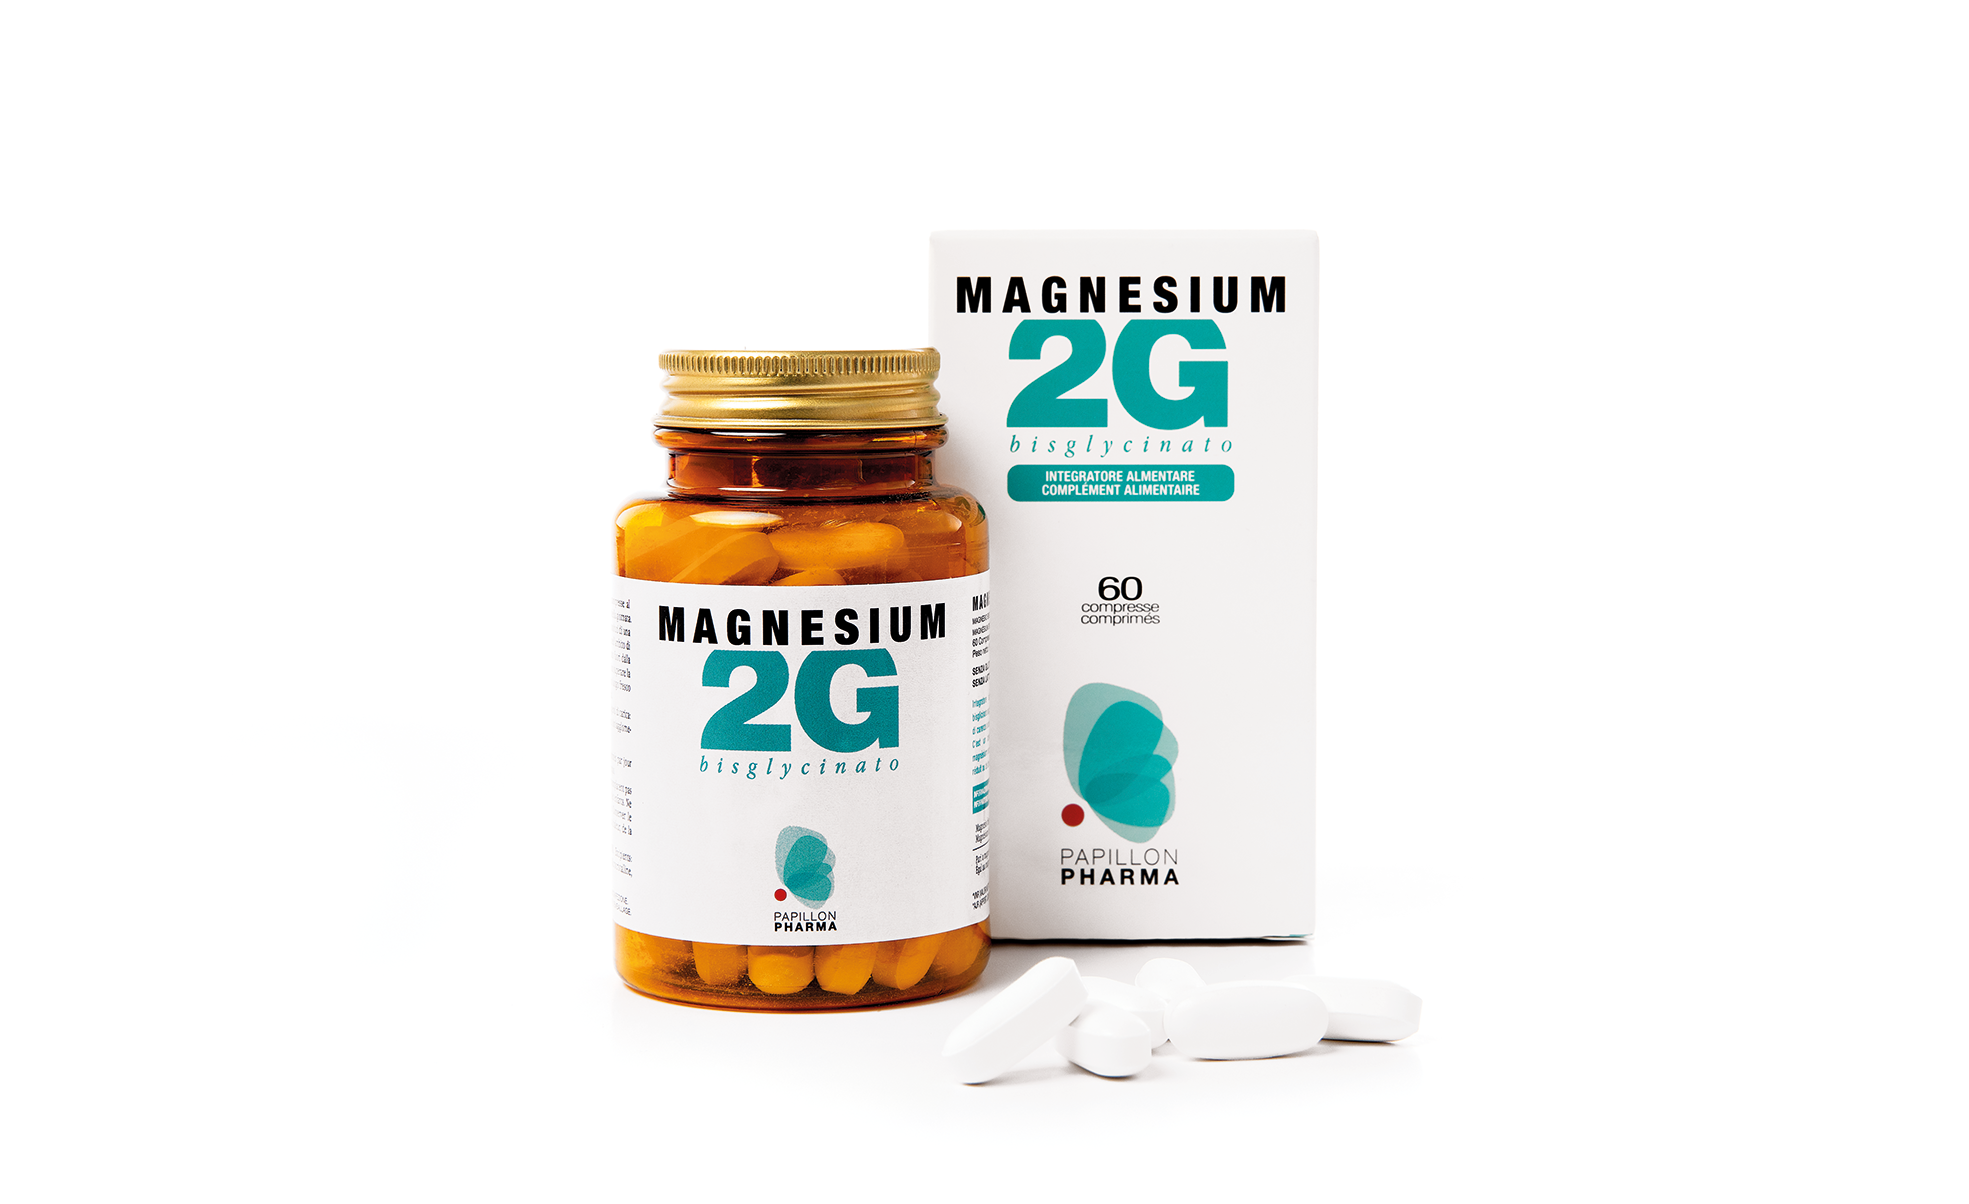 Products - Magnesium 2G the integrator suitable for all